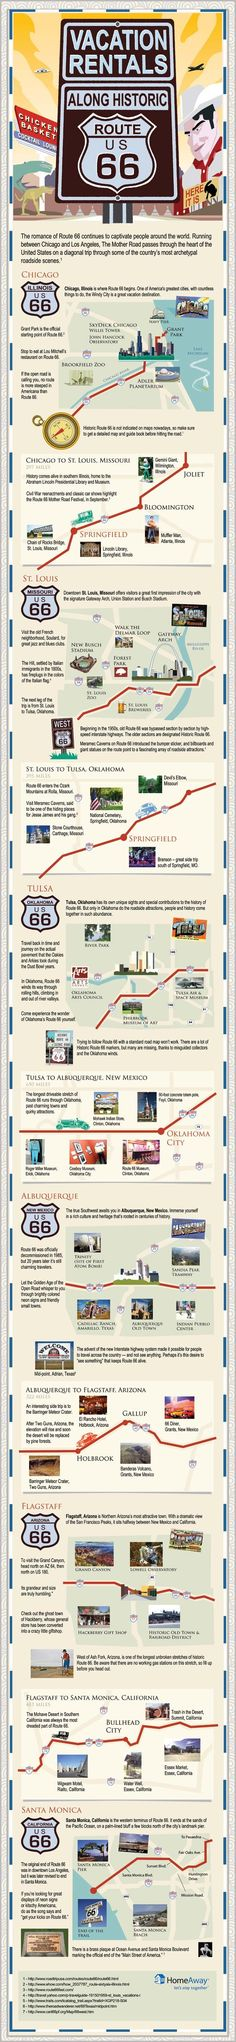 Infographic of stops along Route 66